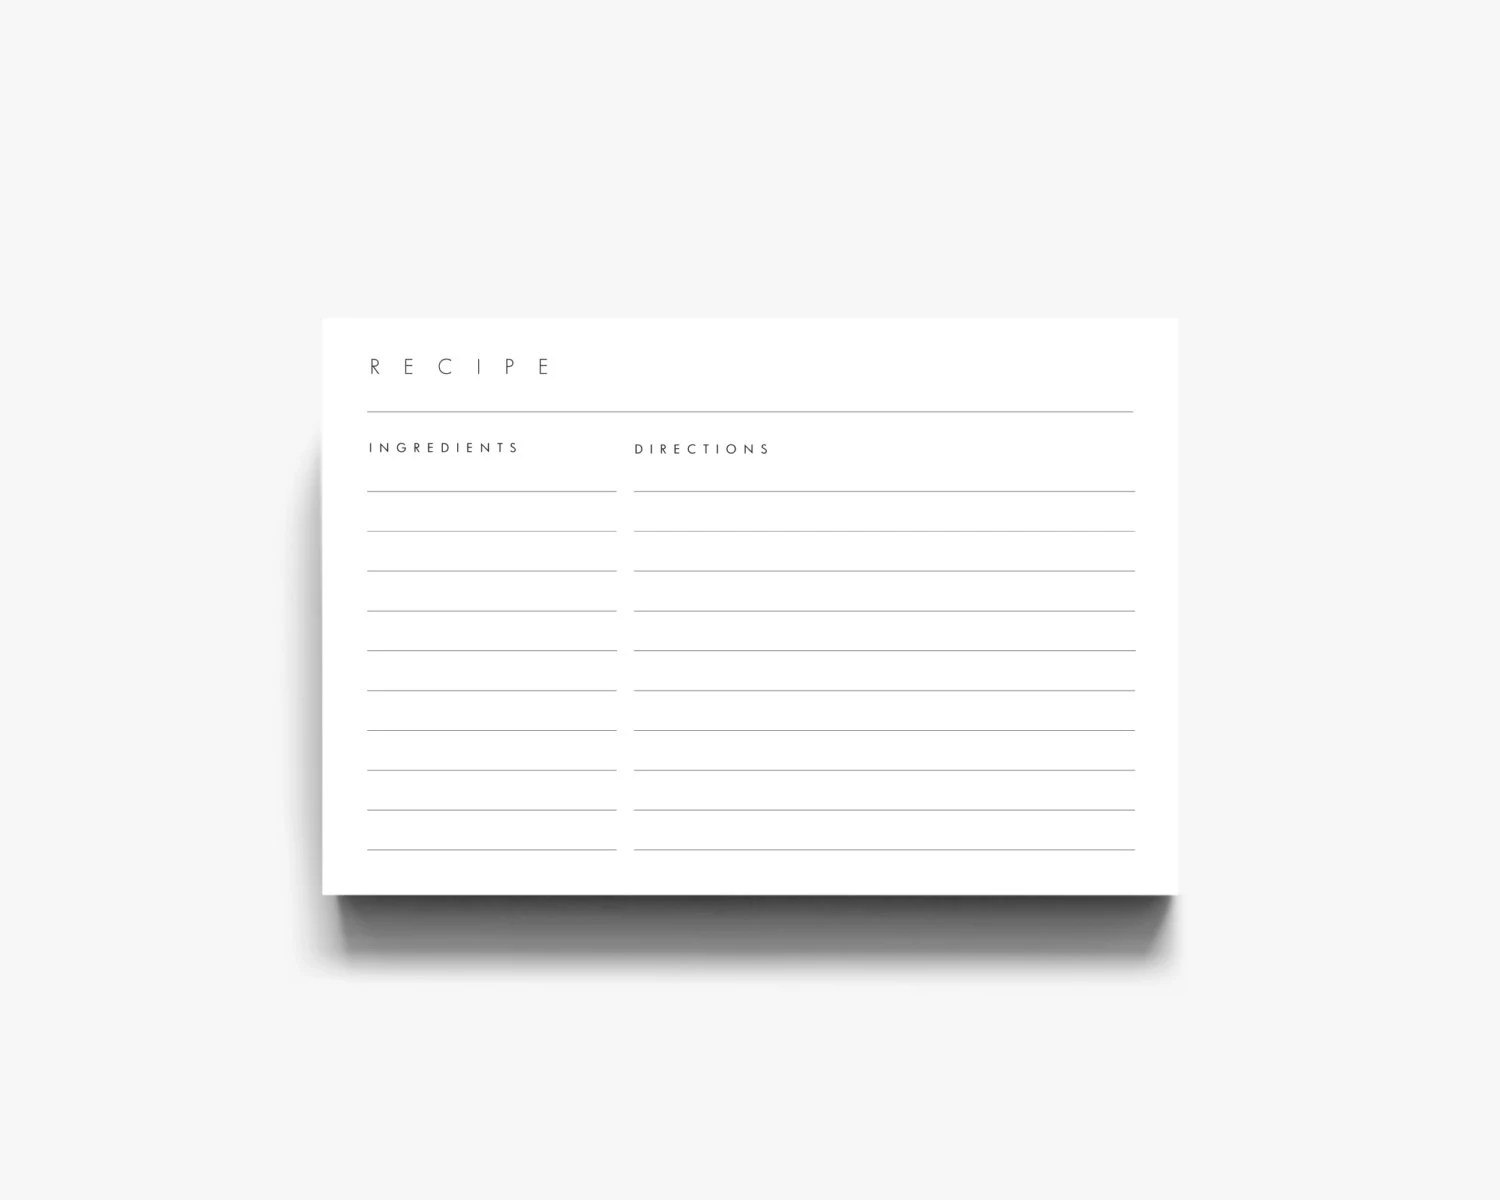 4x6 Recipe Template 3x5 Recipe Cards Recipe Card Template - black and white recipe card template